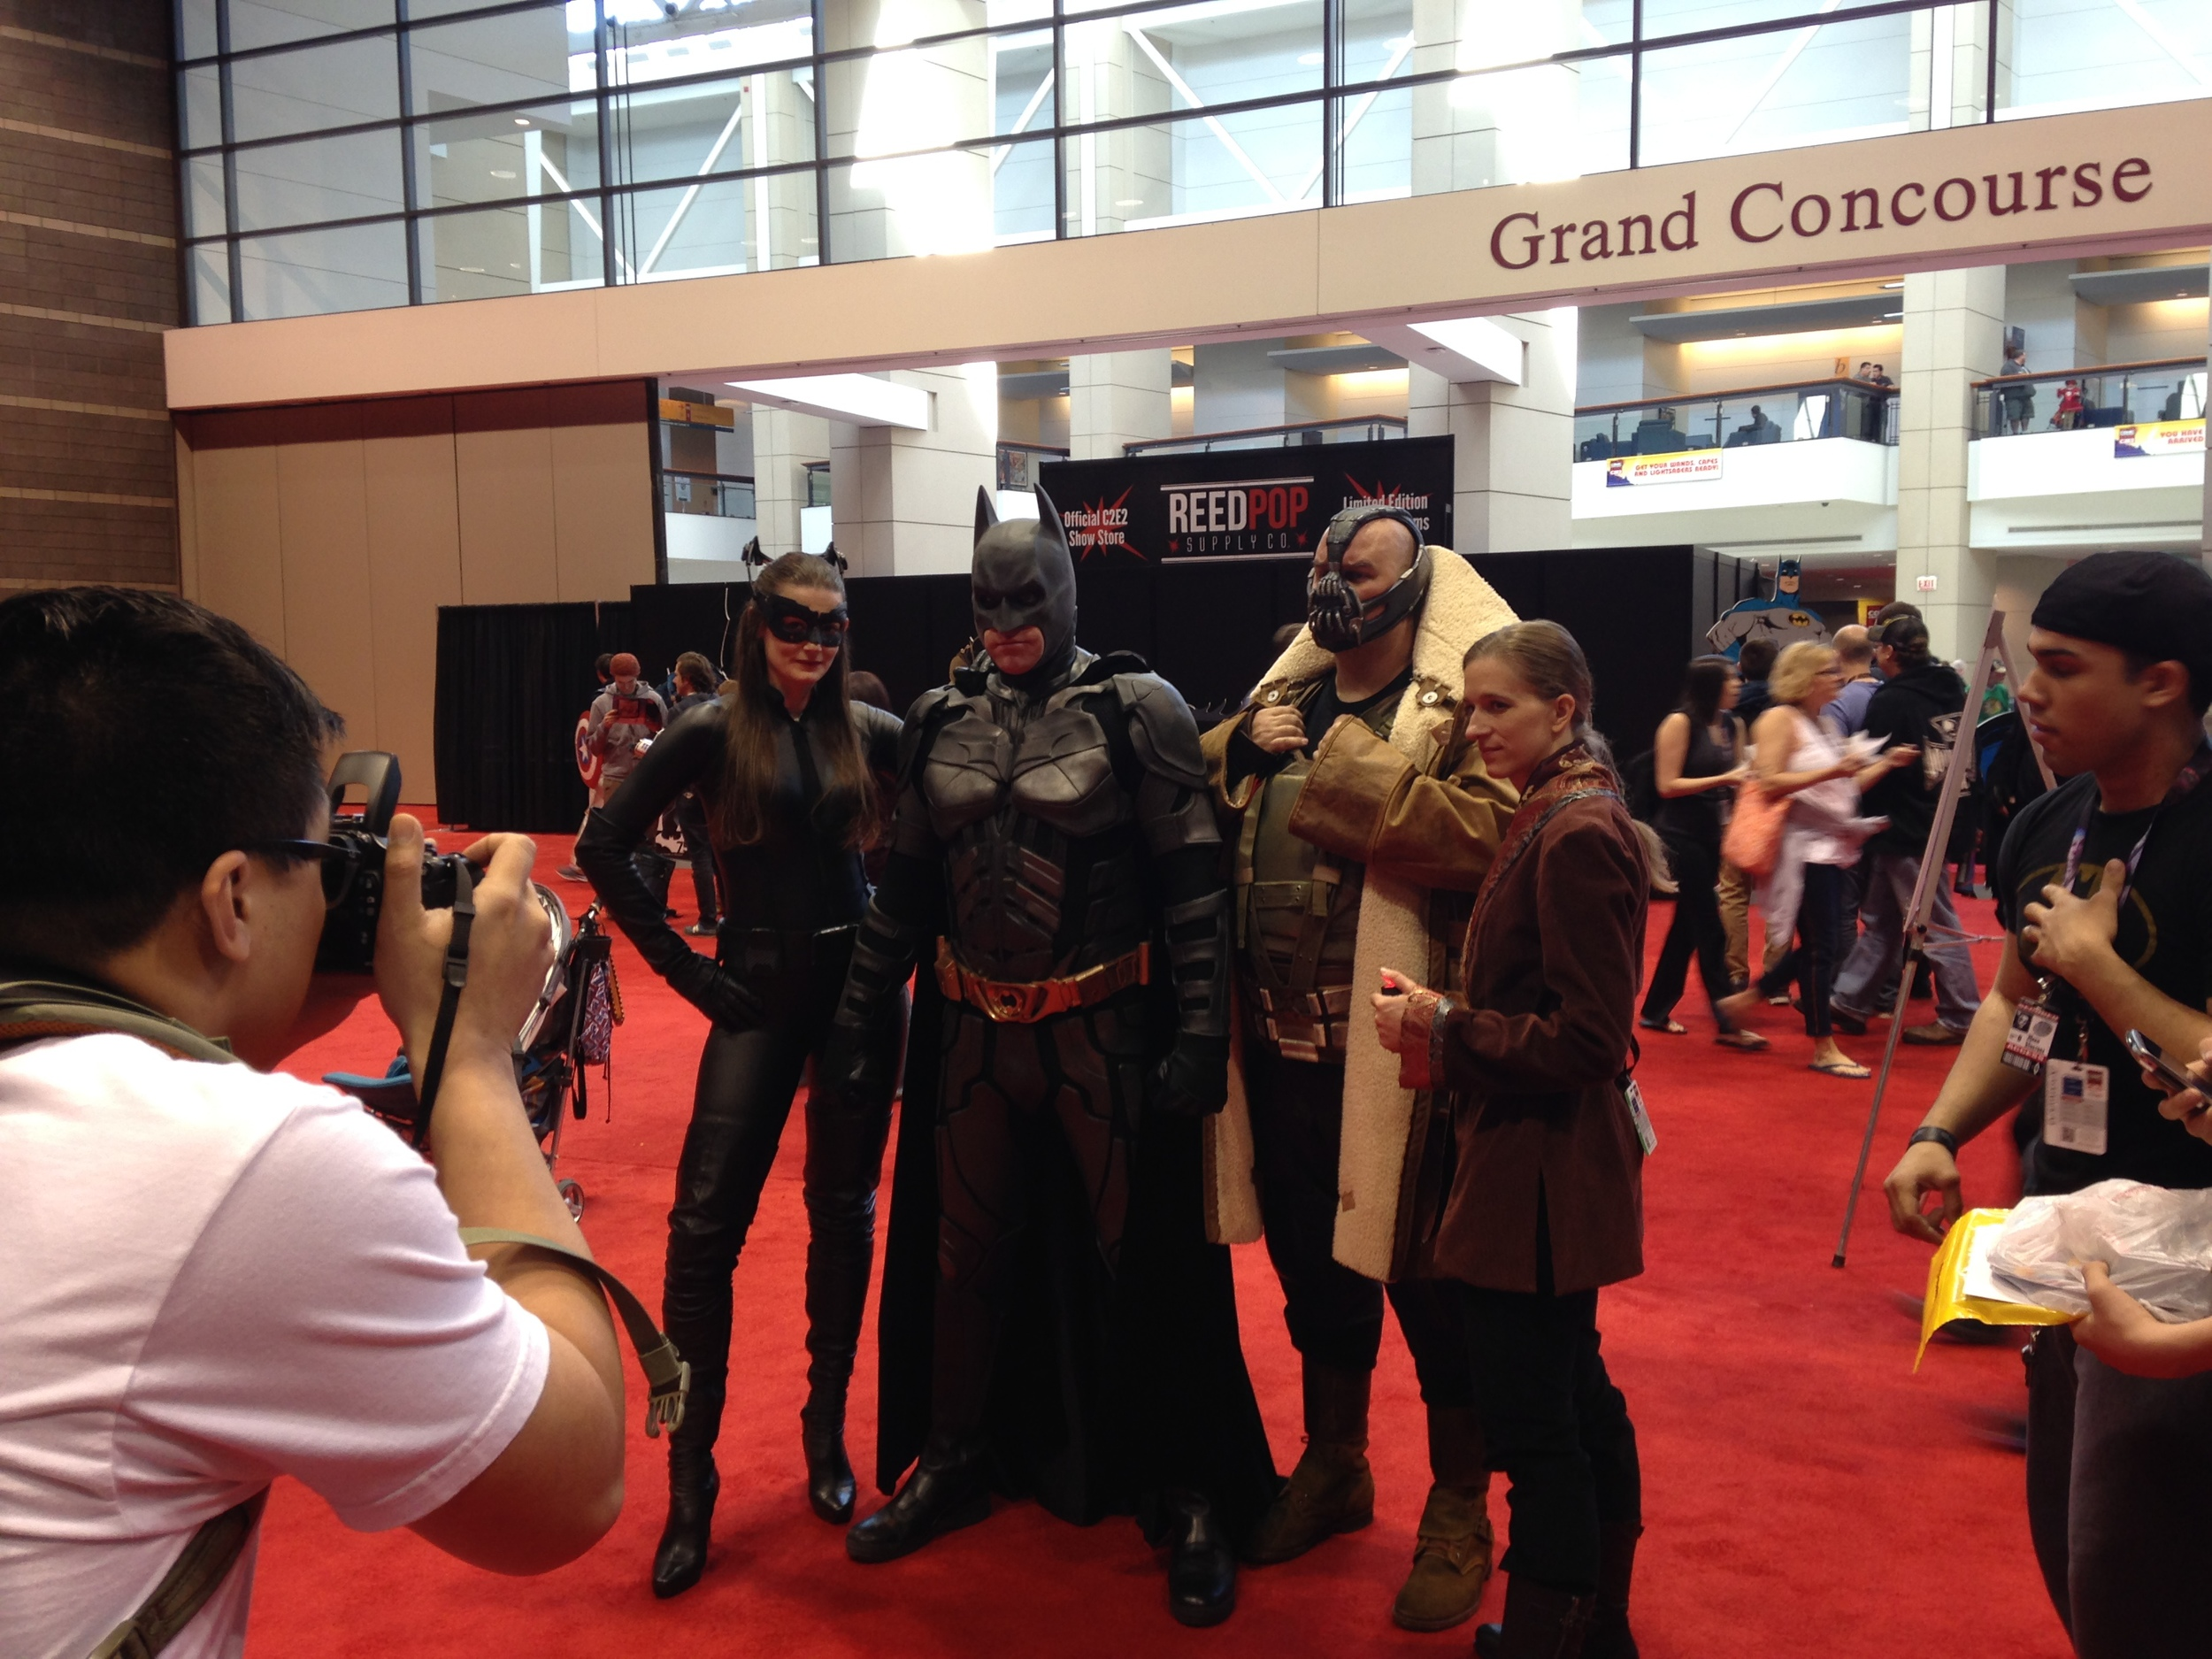 C2E2 Cosplayer - Catwoman, Batman, and Bane